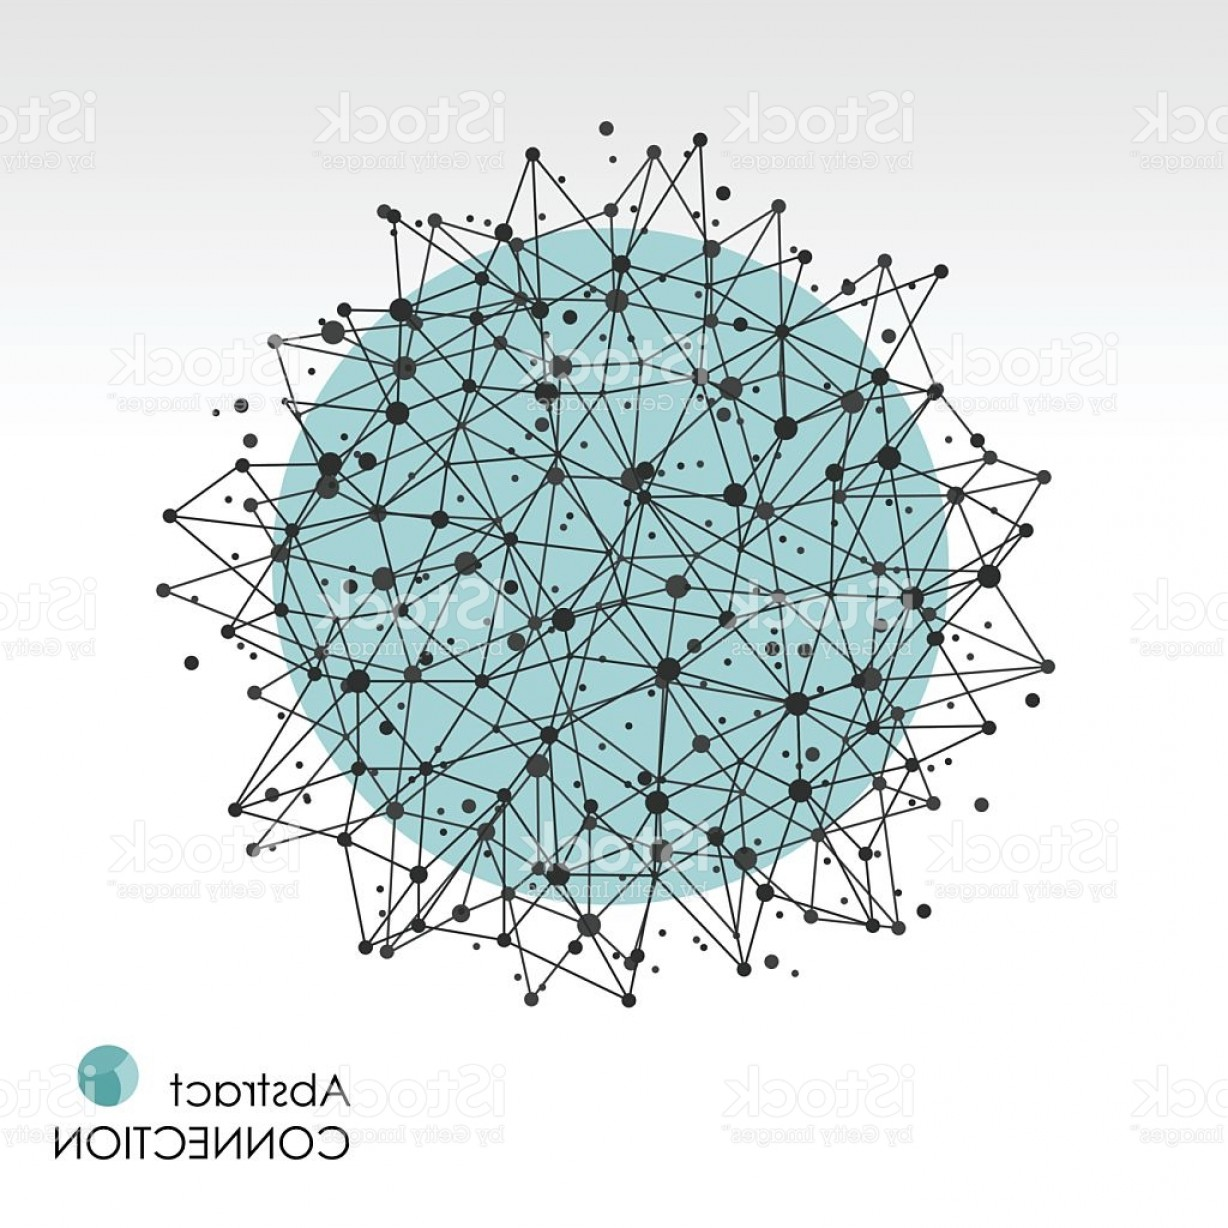 Free Abstract Vector Art: Abstract Globe Network Connections Vector Background Molecular Polygonal Connection Gm